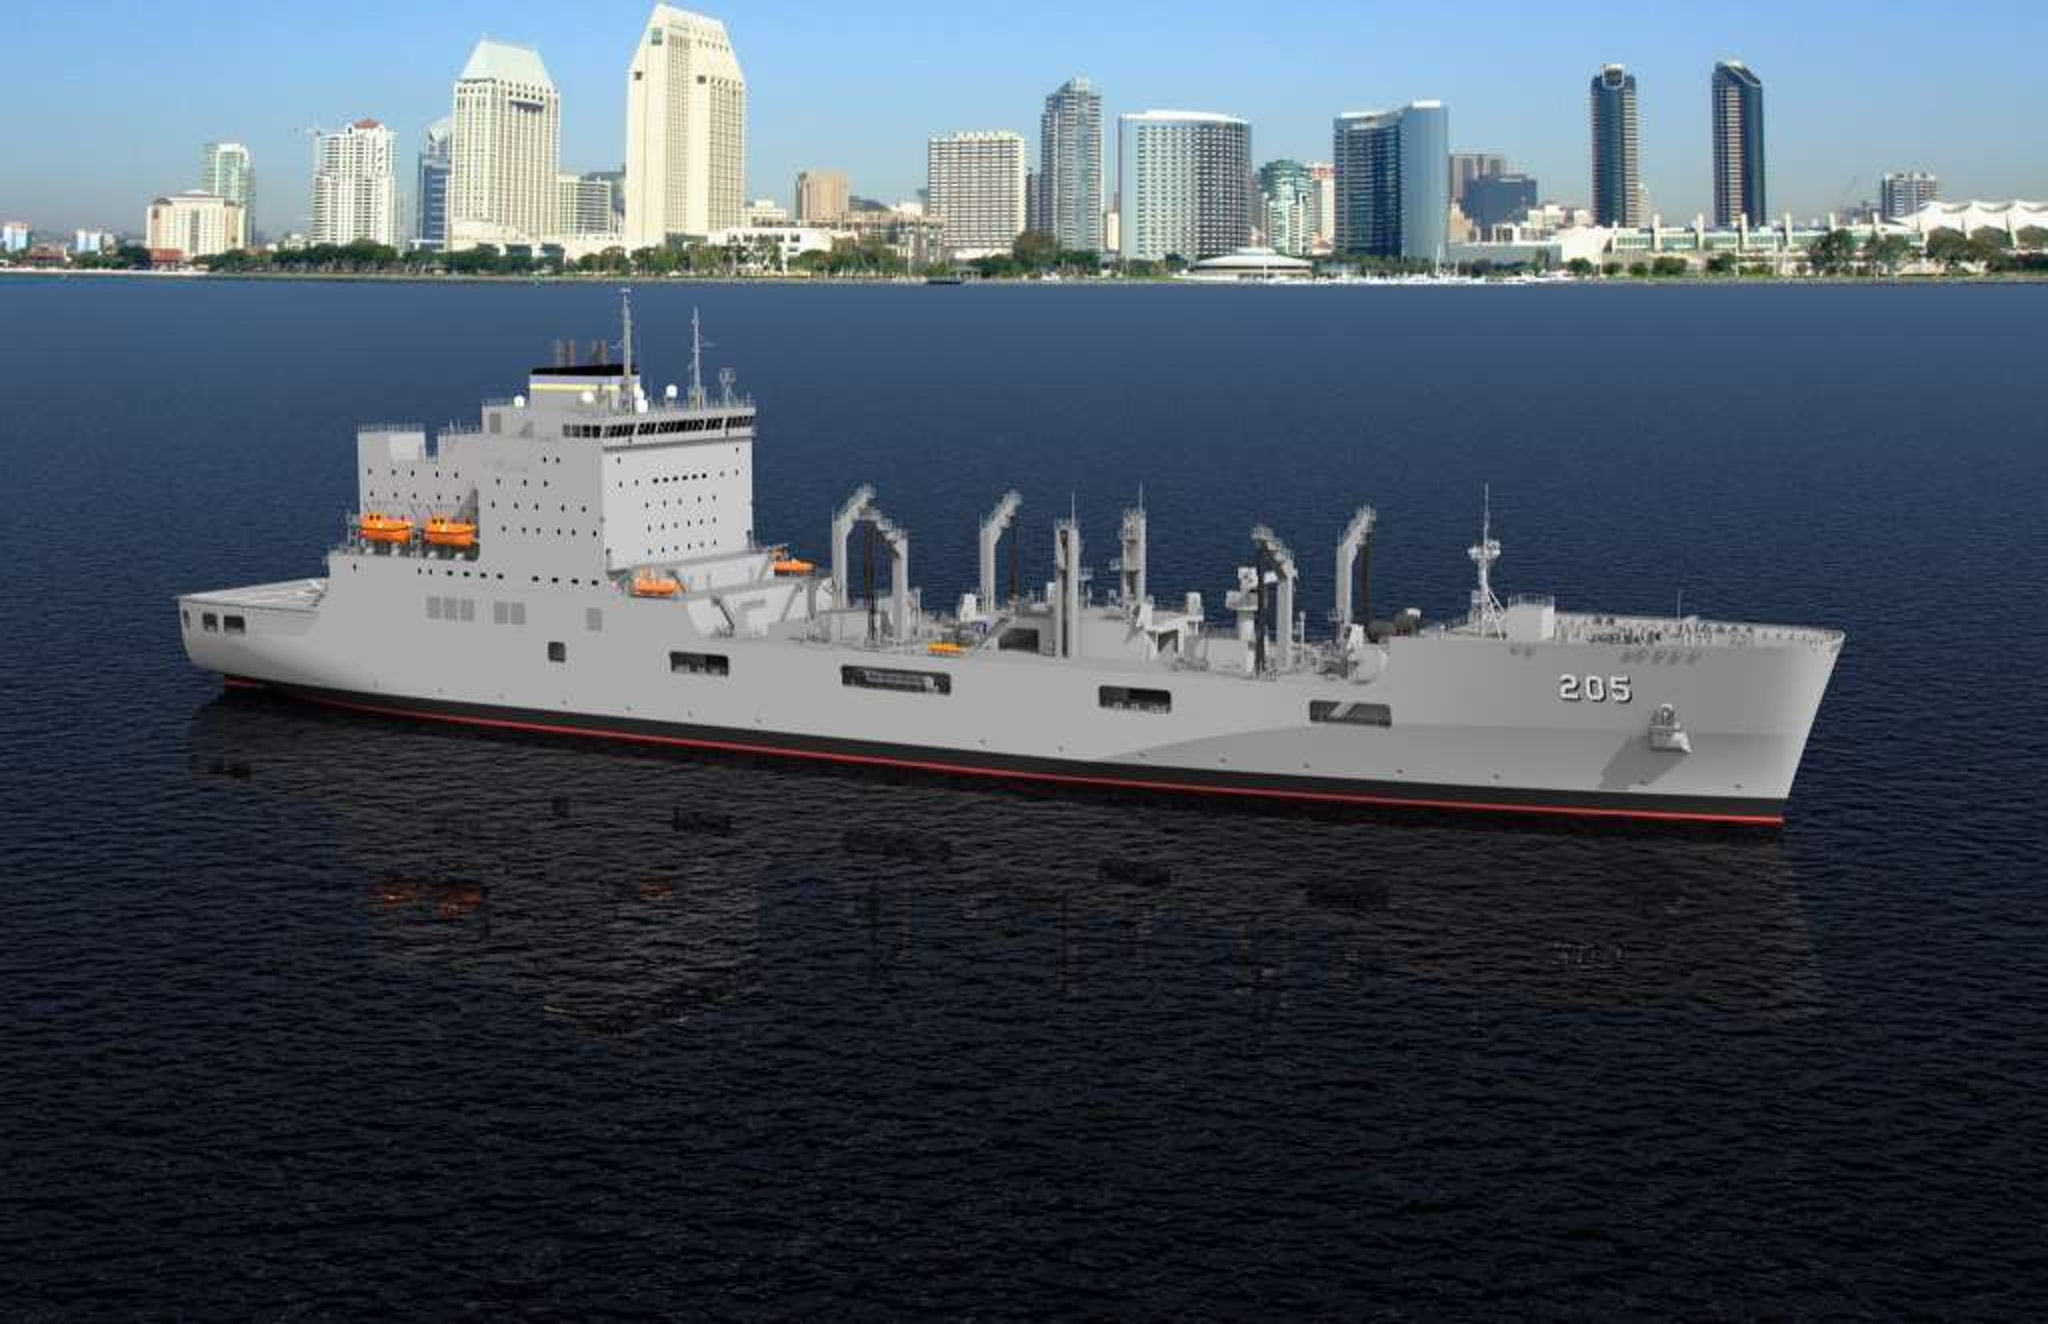 A rendering of one of the ships expected to be named in honor of gay rights icon and former Navy serviceman Harvey Milk.